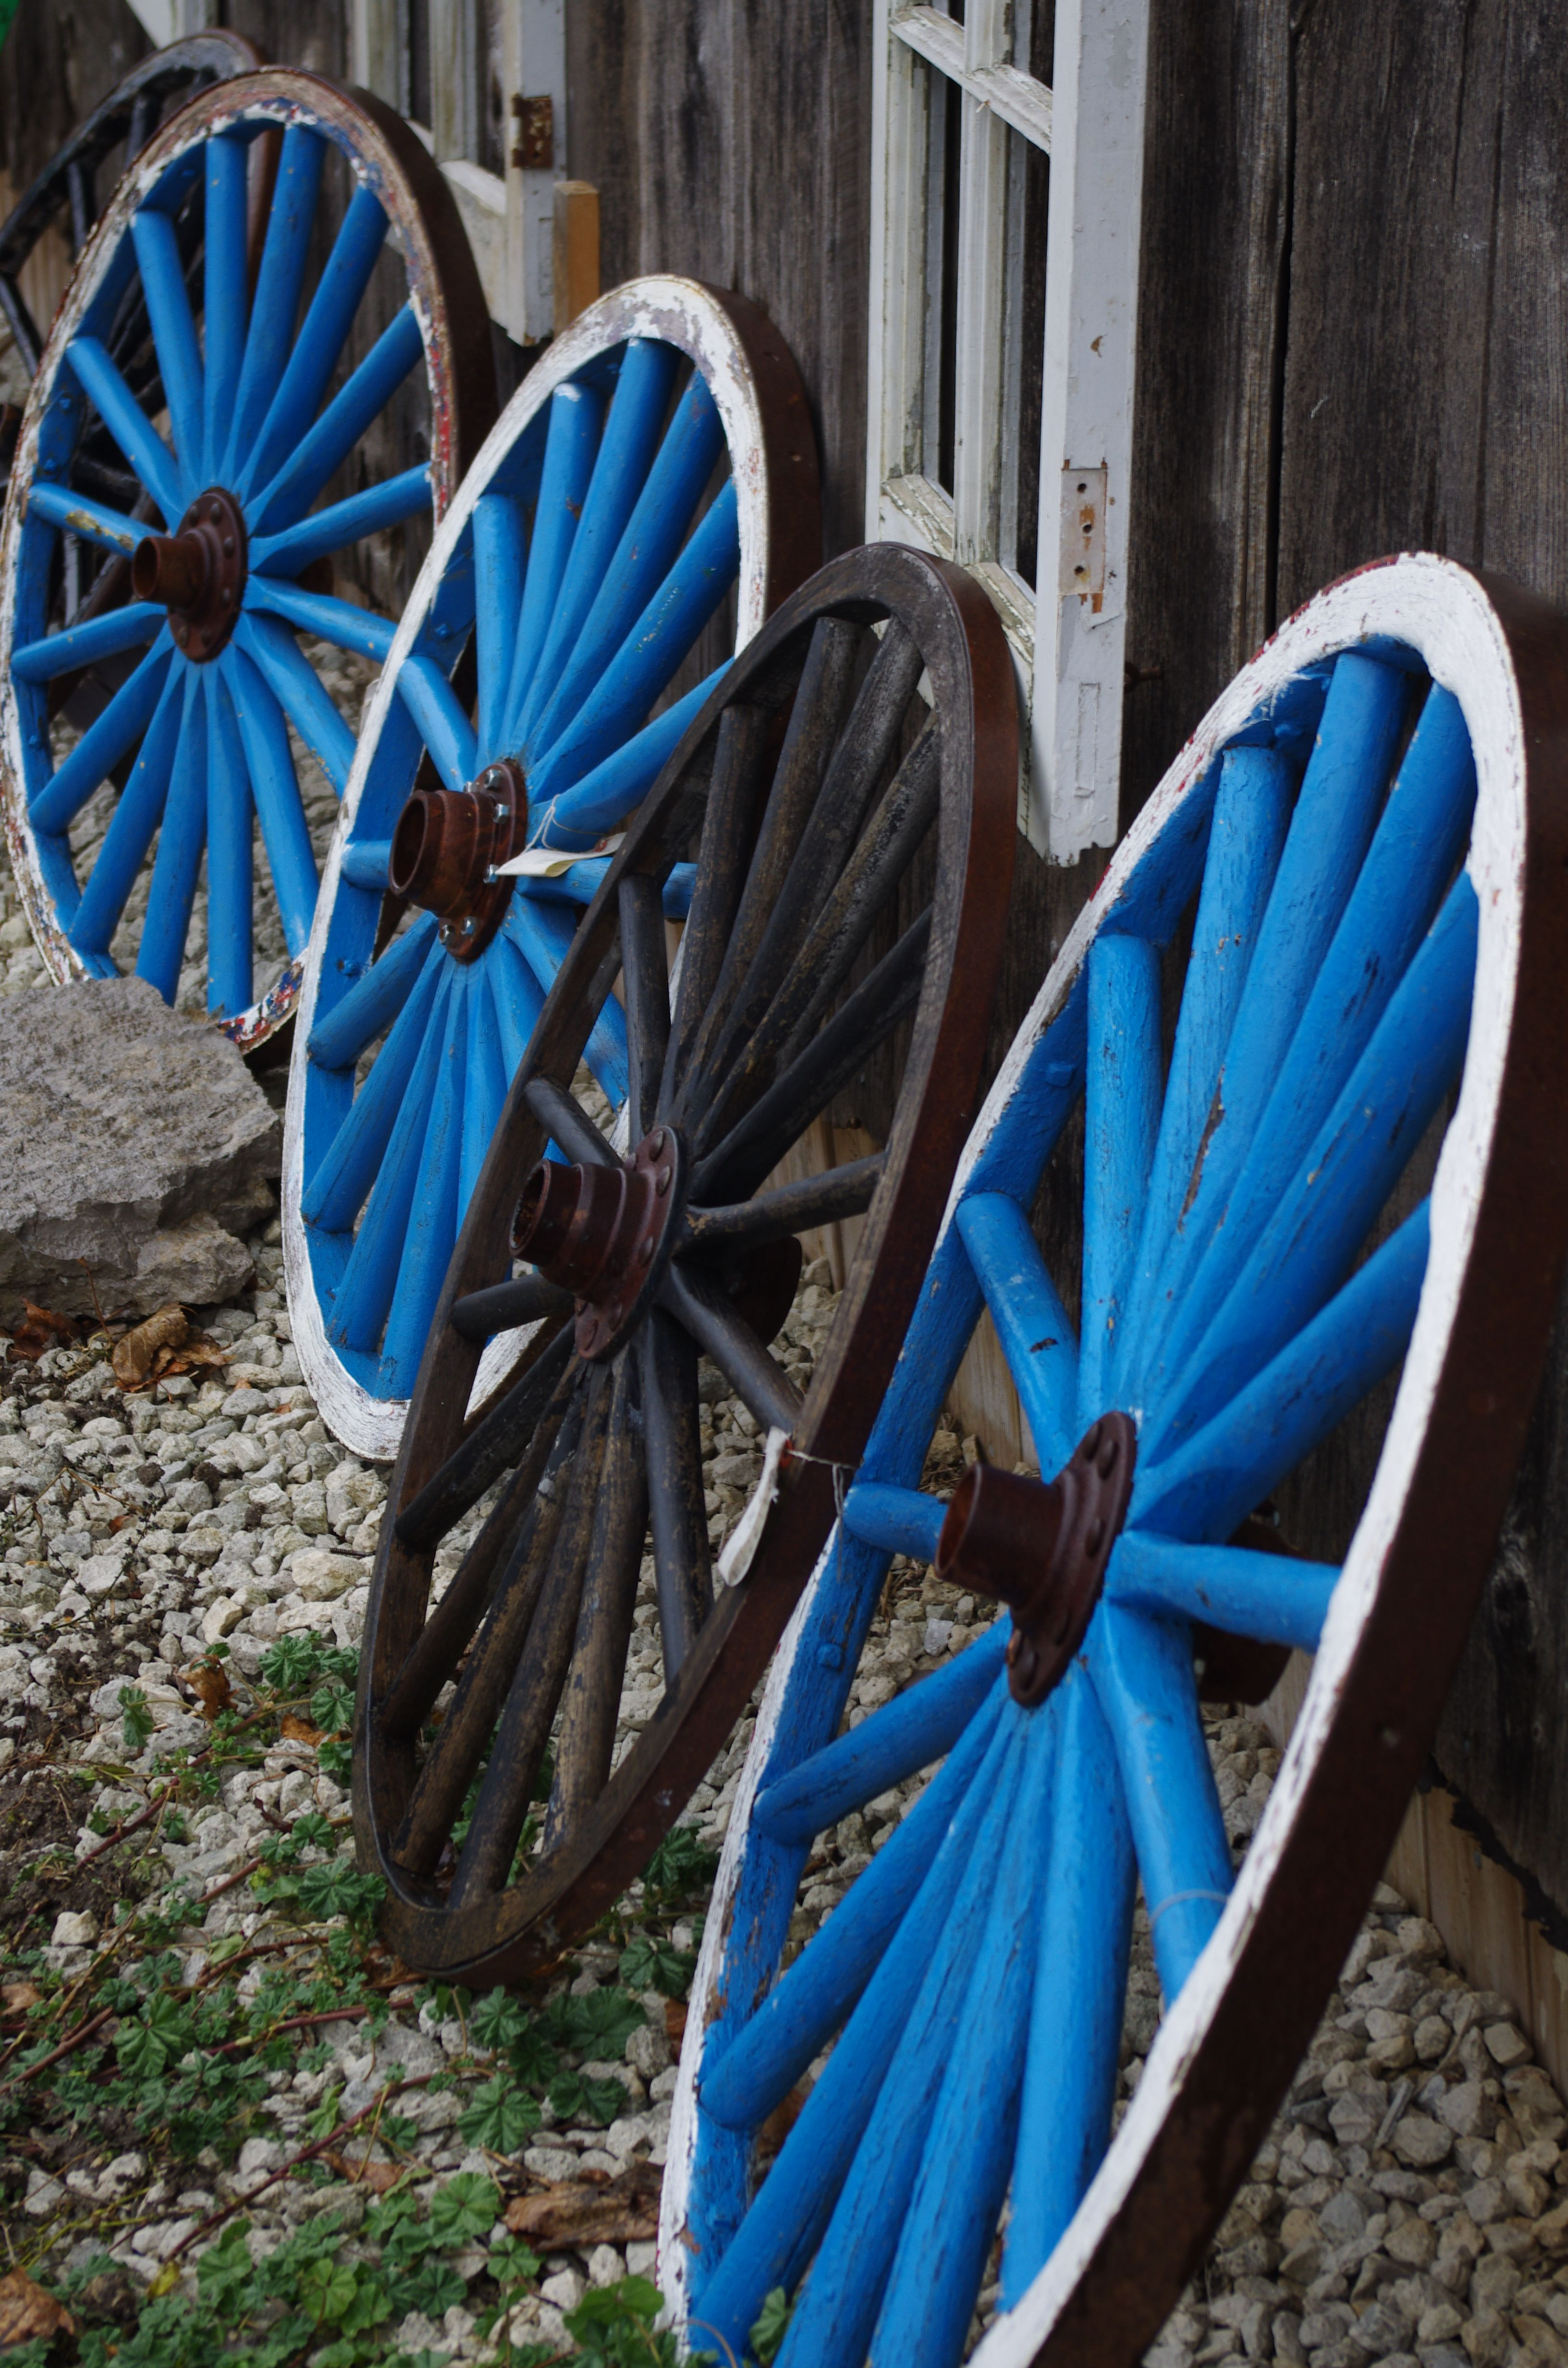 Odd wheel out. Photo by Cheryl Meyer